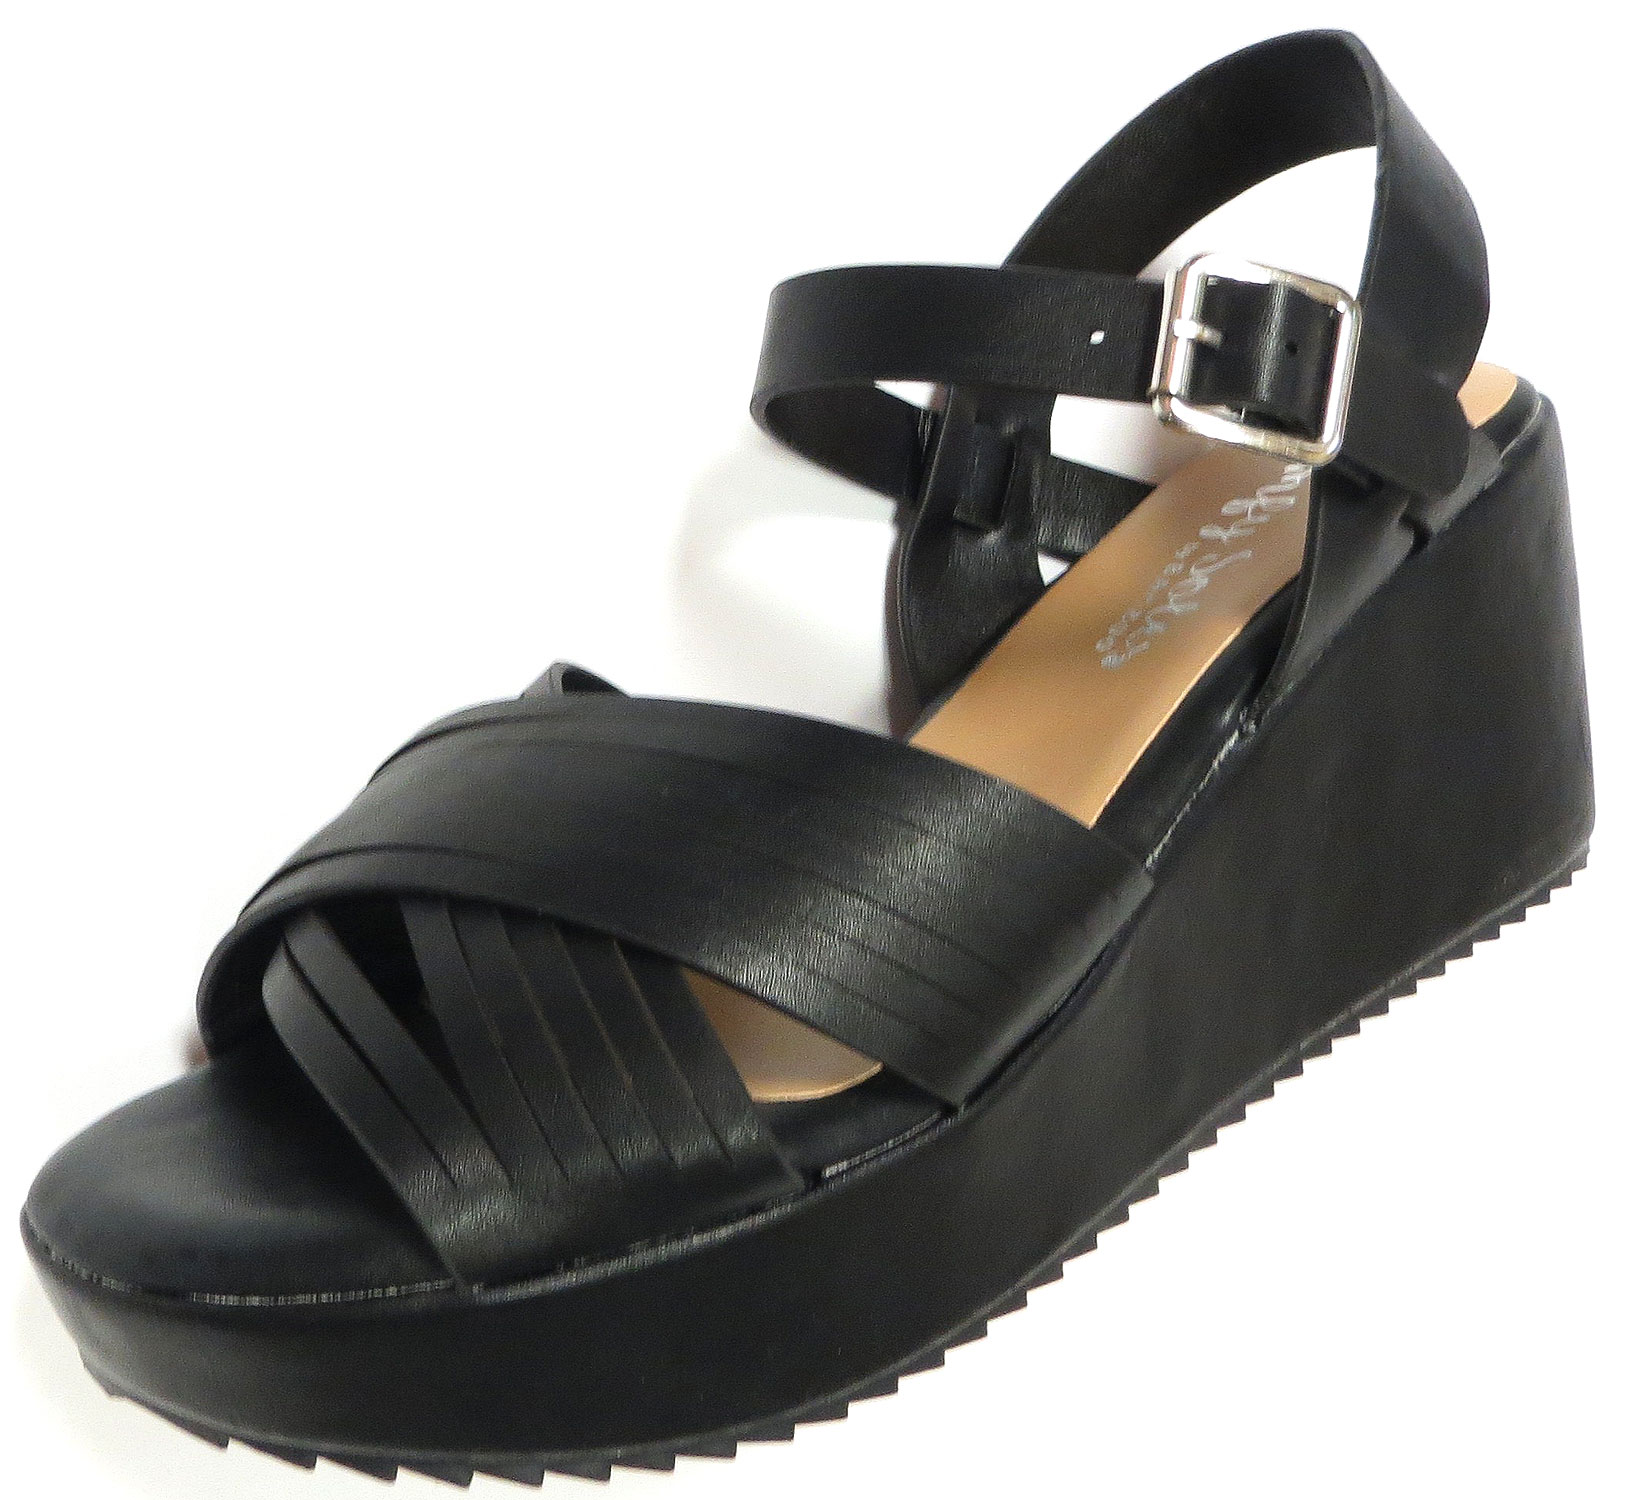 fc7a3471457e Black vegan leather platform sandal with cushioned insoles